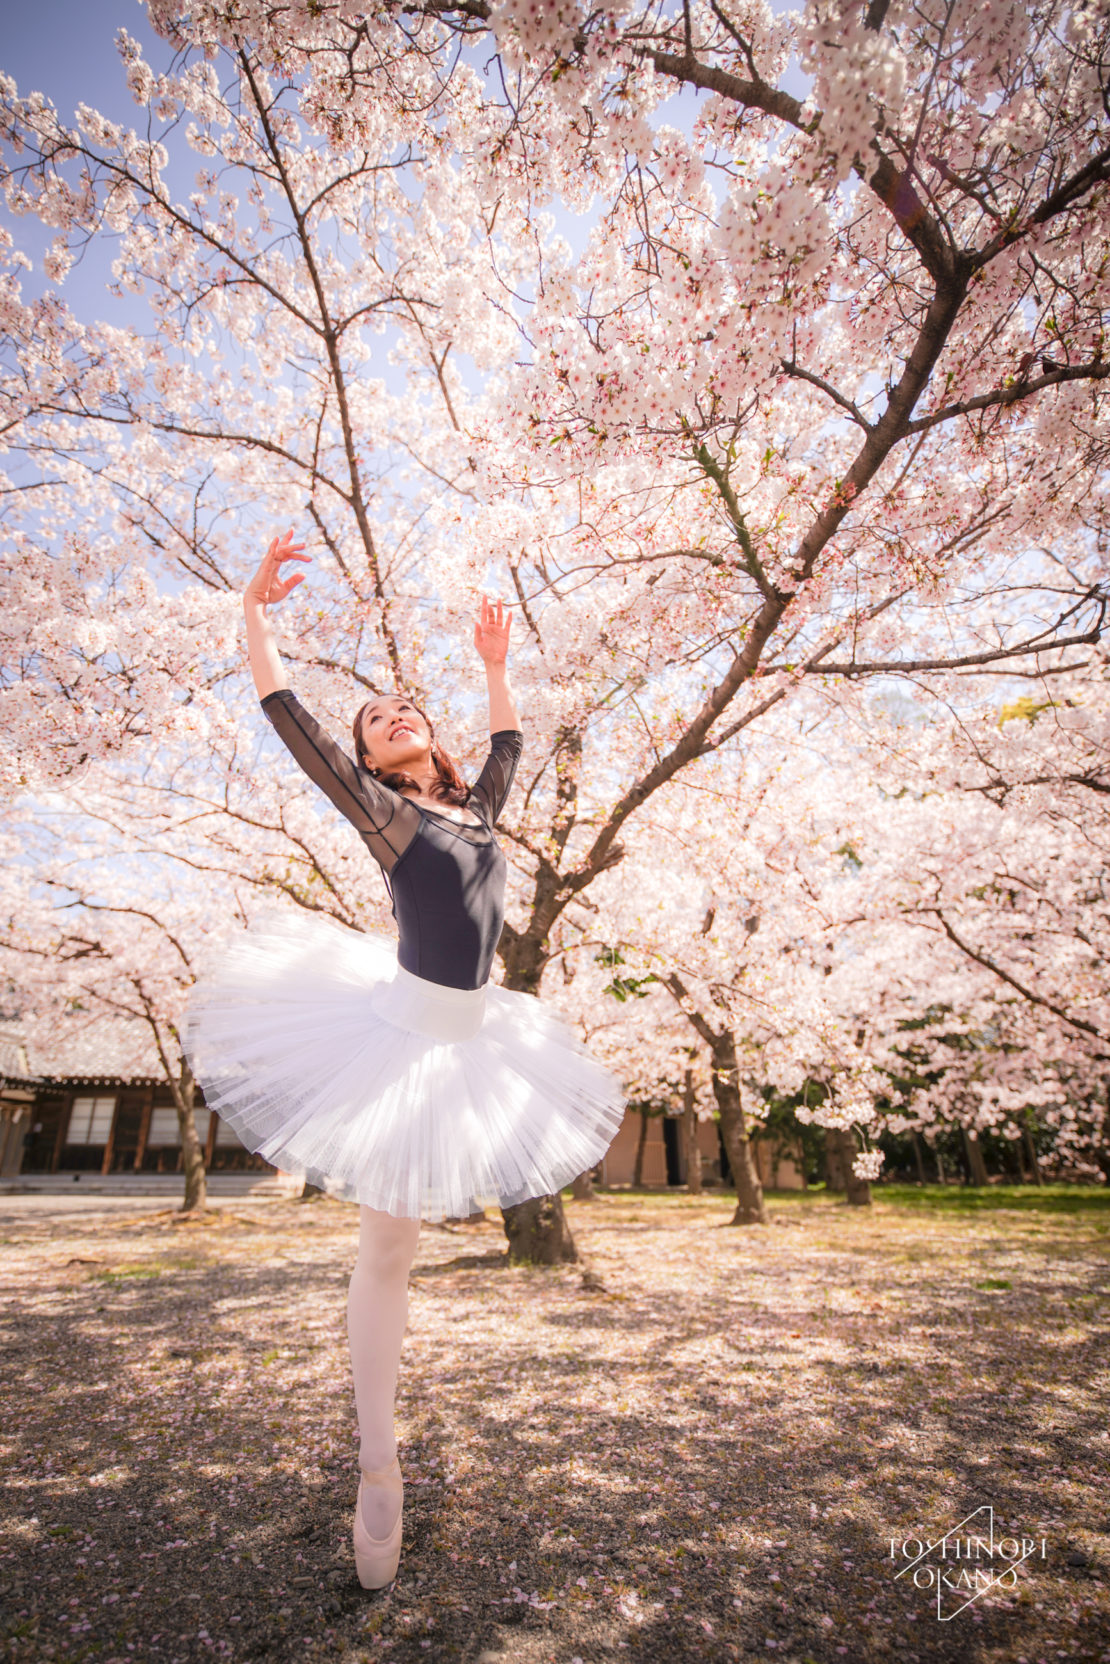 photo 48 Cherry blossom and ballet